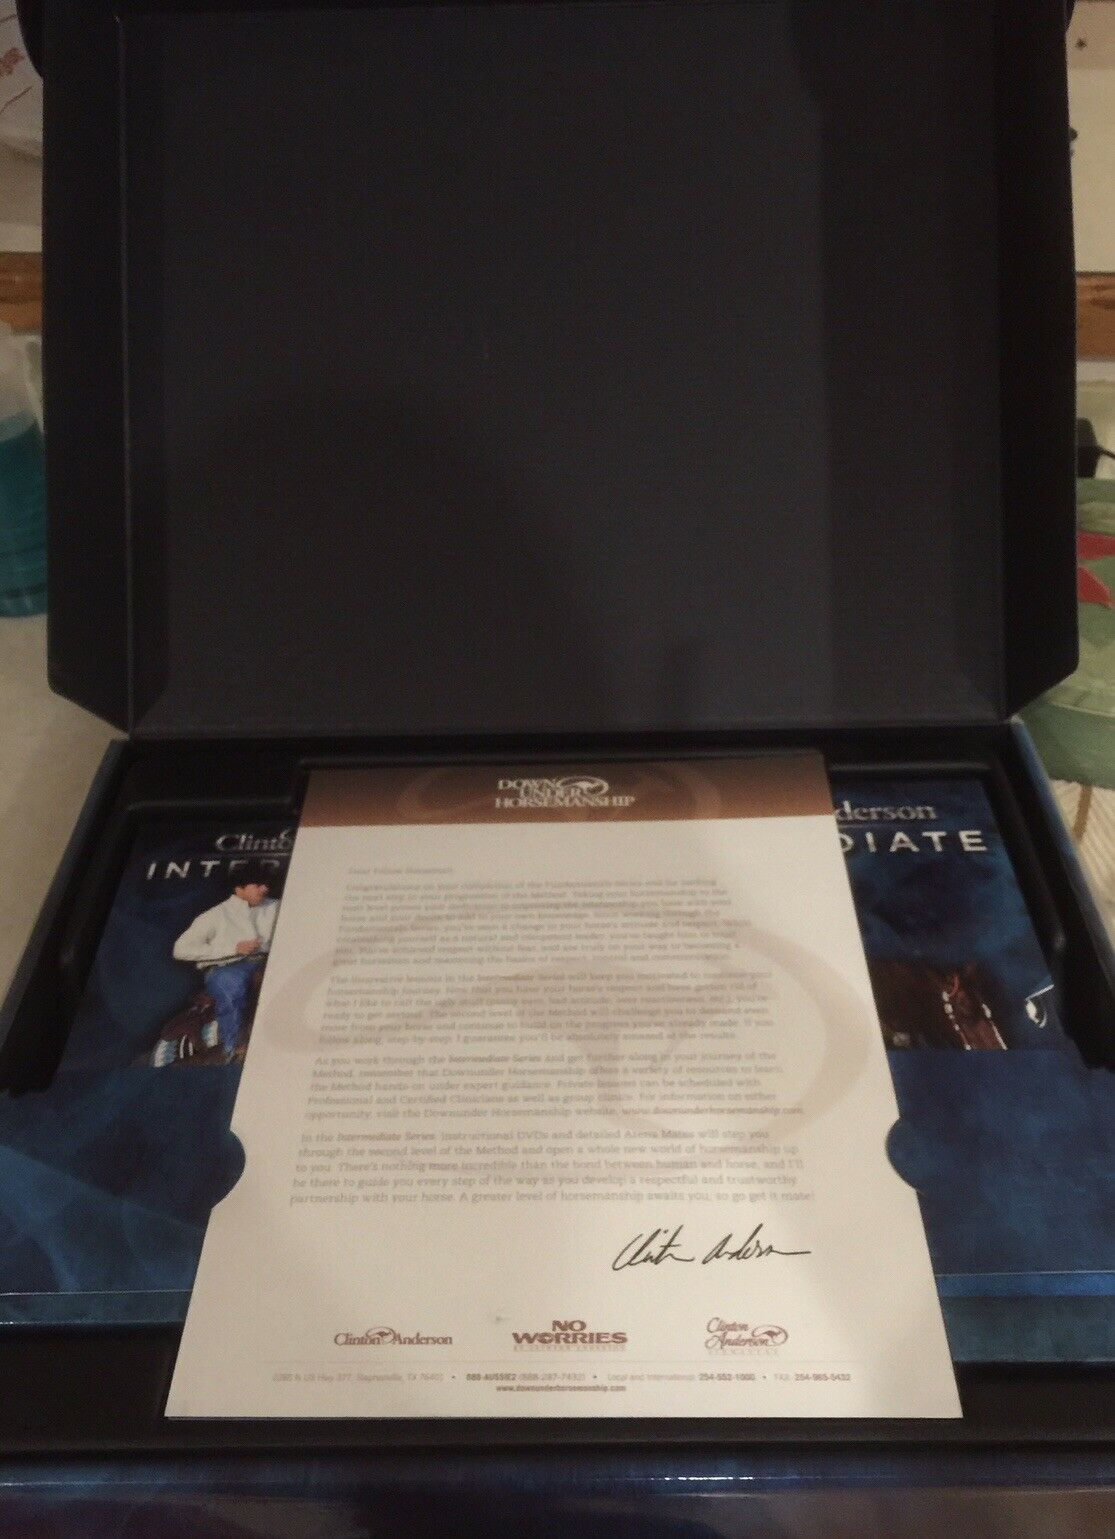 AUTHENTICBrand New Clinton Anderson Intermediate Kit-+extras